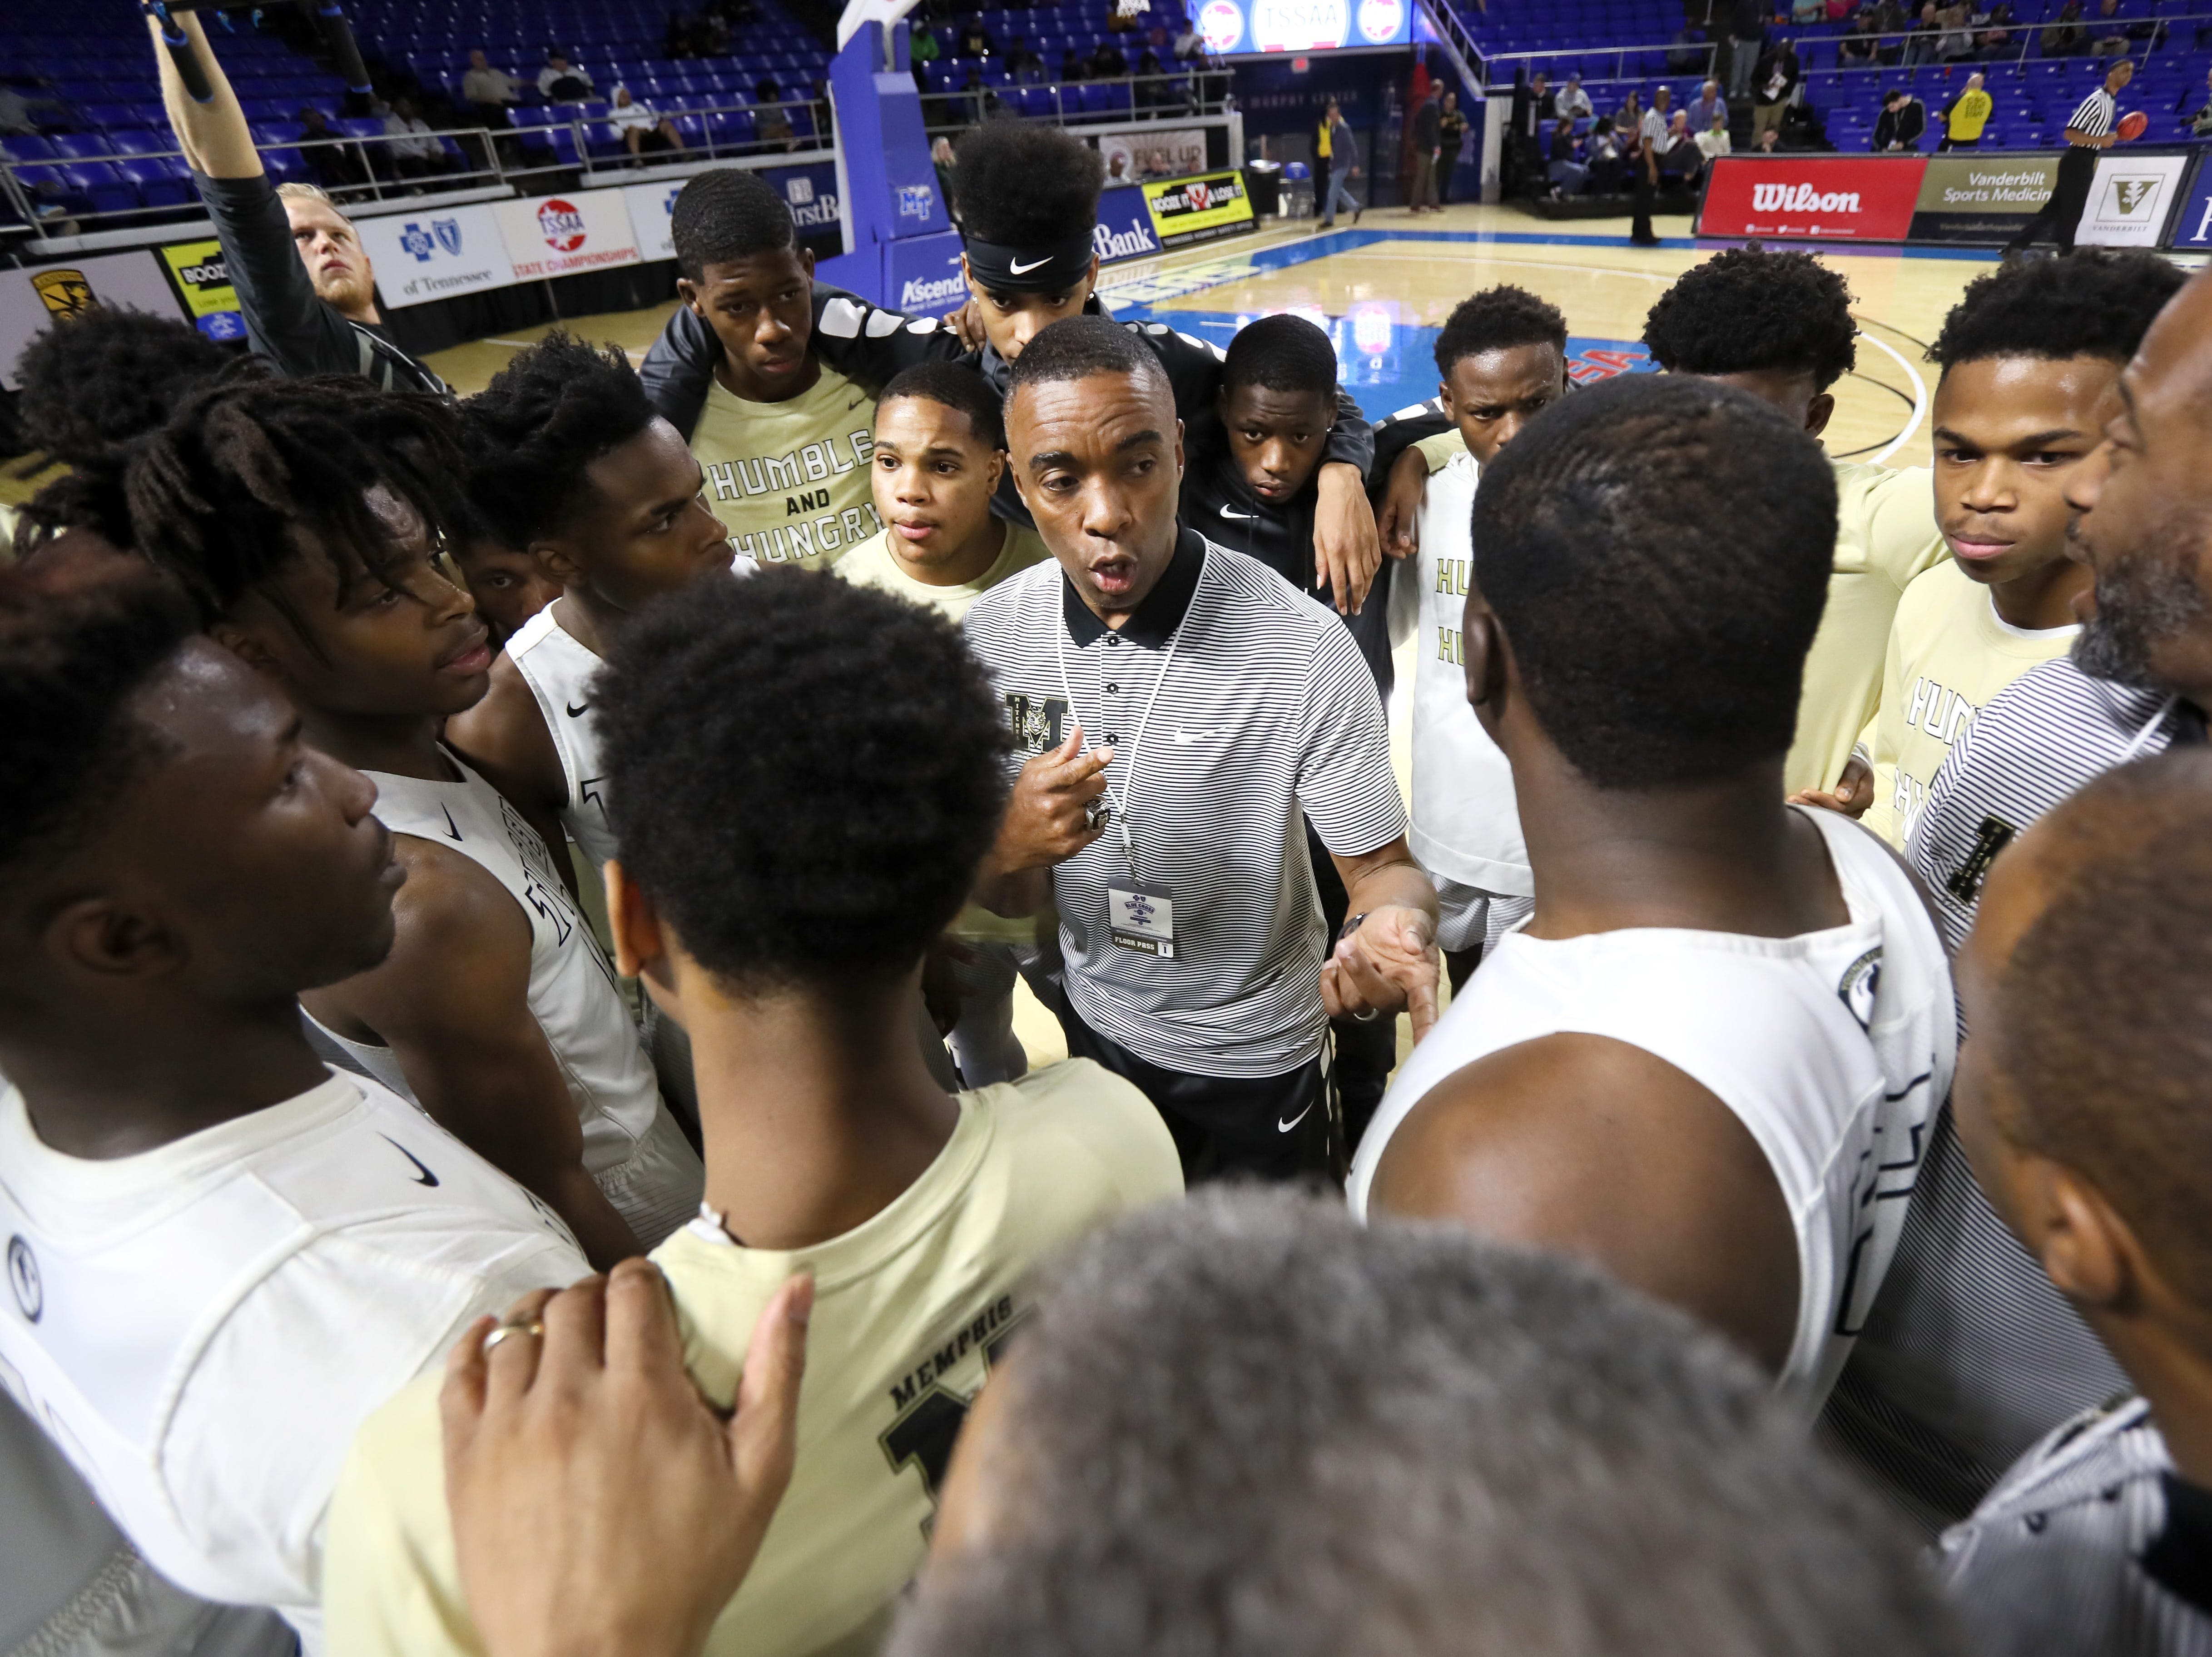 Mitchell Head Coach Andre Turner talks to his team before their game against Fulton during the TSSAA Division I basketball state tournament in Murfreesboro on Wednesday, March 13, 2019.